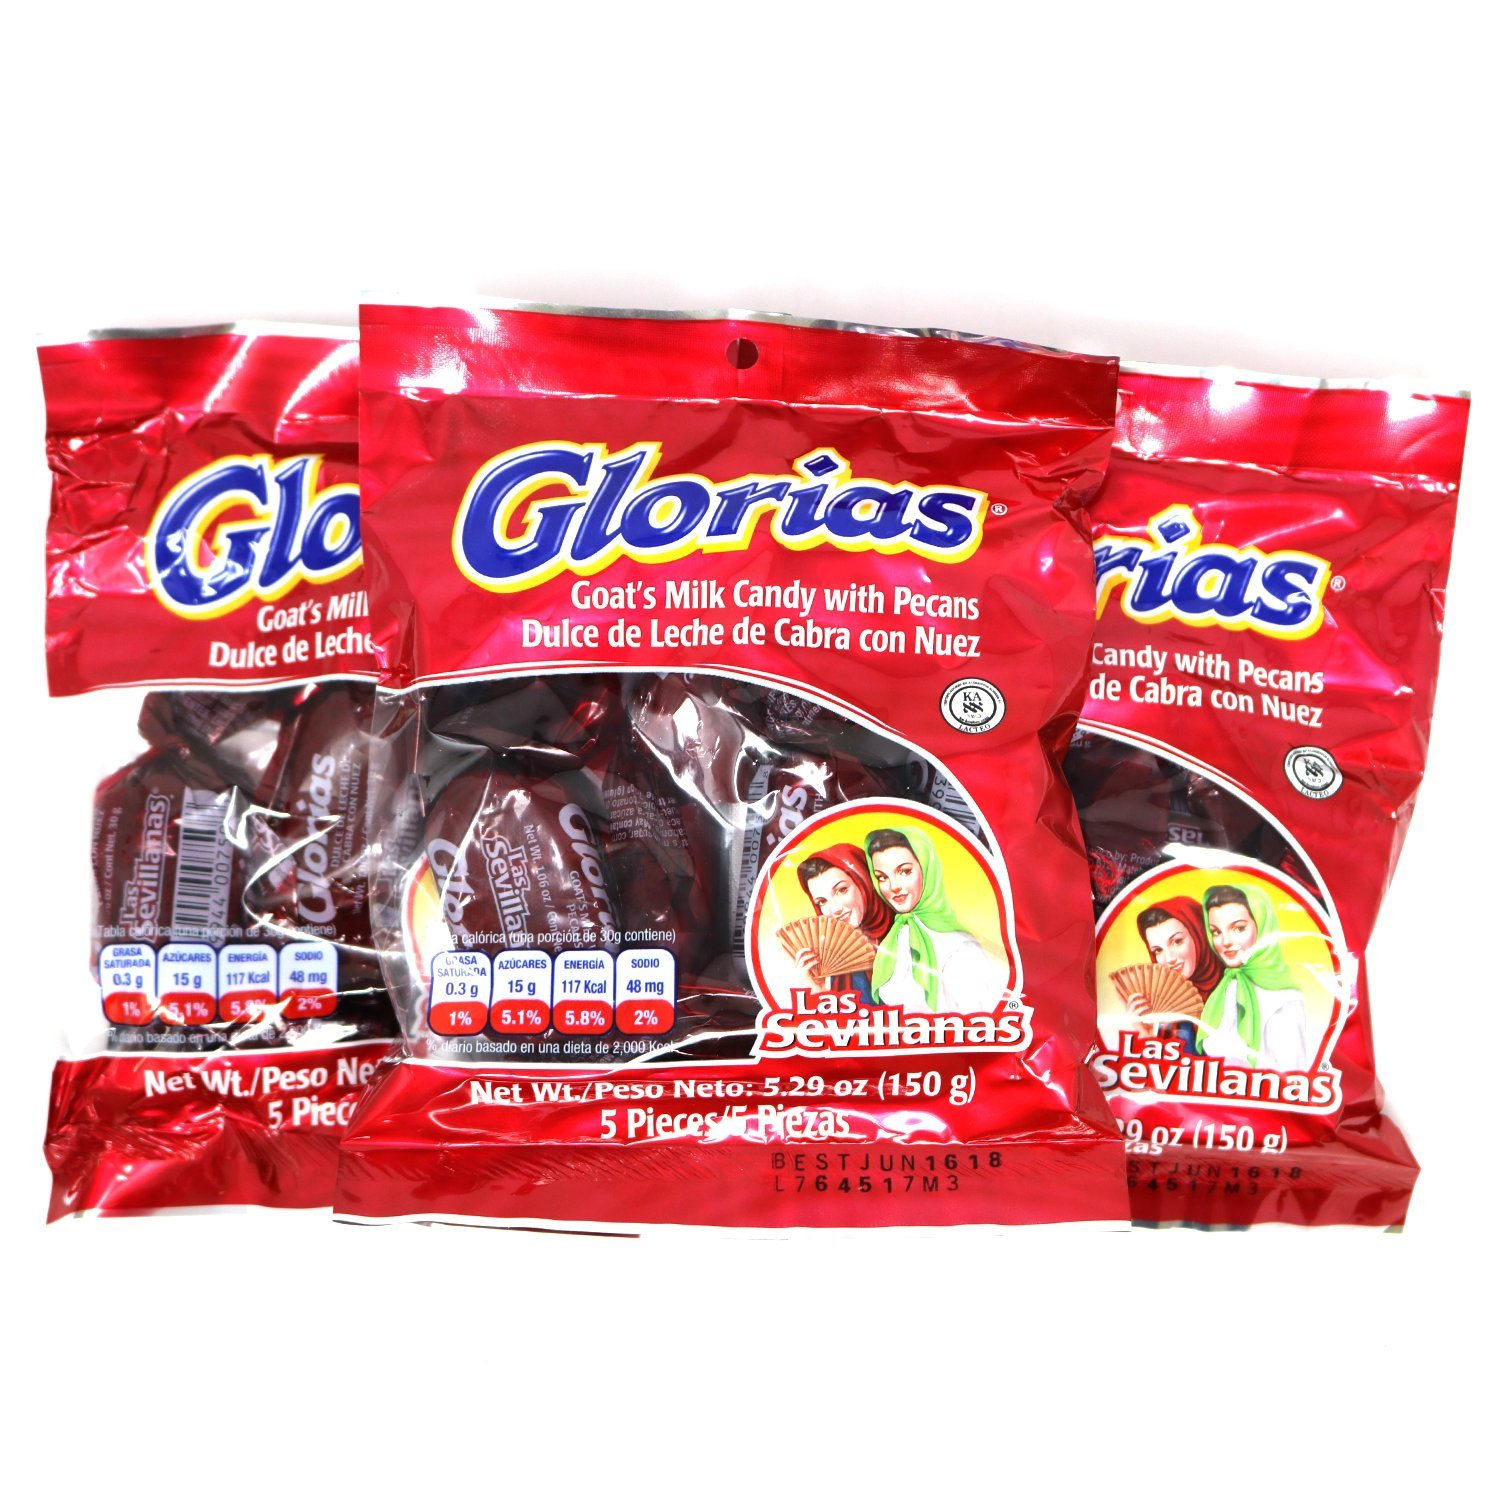 Amazon.com : Glorias Las Sevillanas - Goat Milk Candy with Pecans 15.87 oz - 15 Pieces (3 Packs, 5 Units/Pack) : Grocery & Gourmet Food